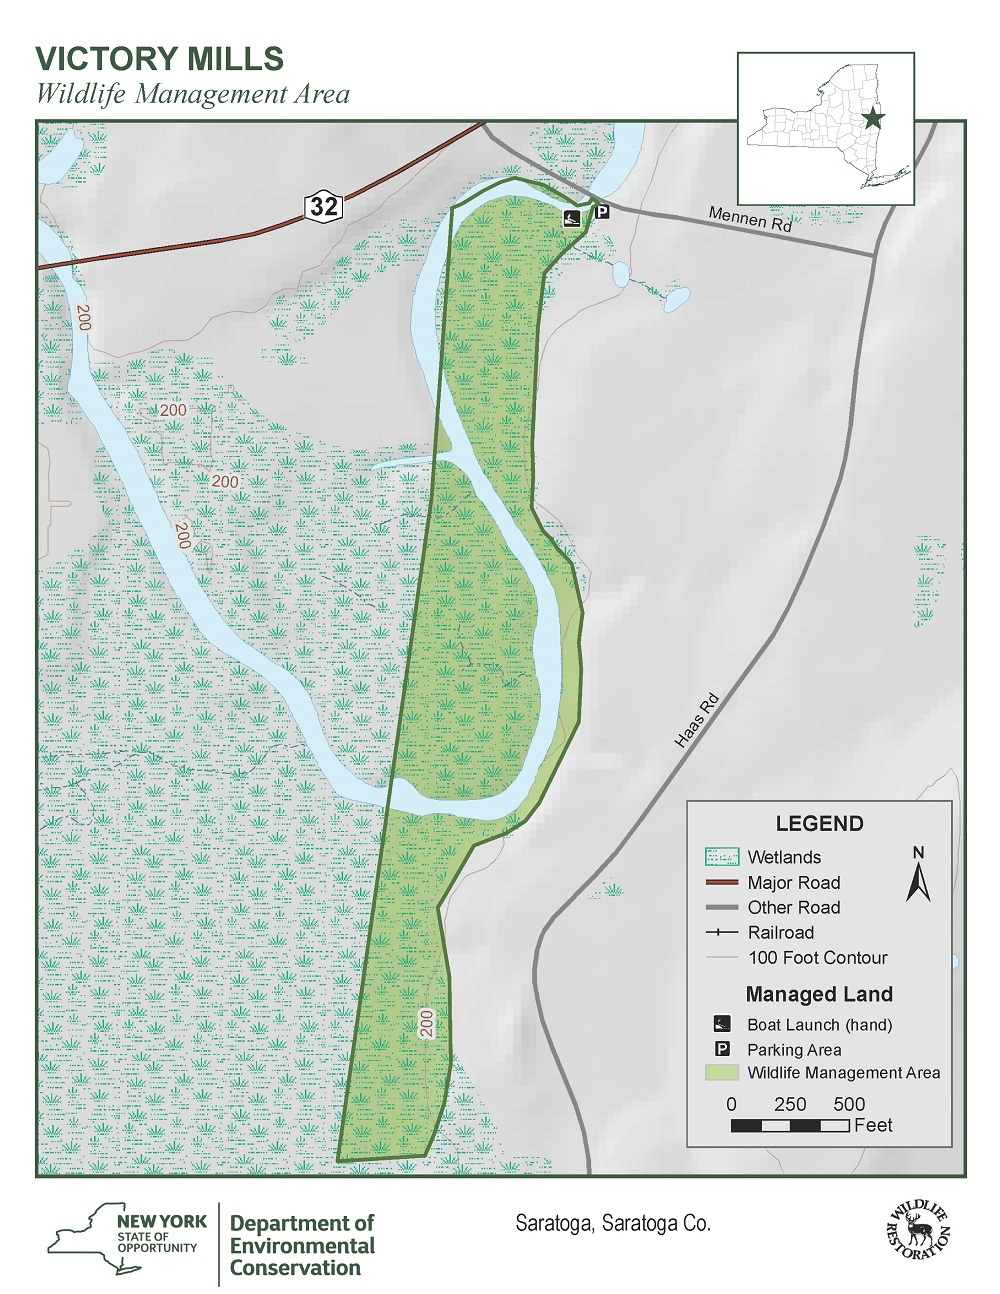 Map of the Victory Mills Wildlife Management Area